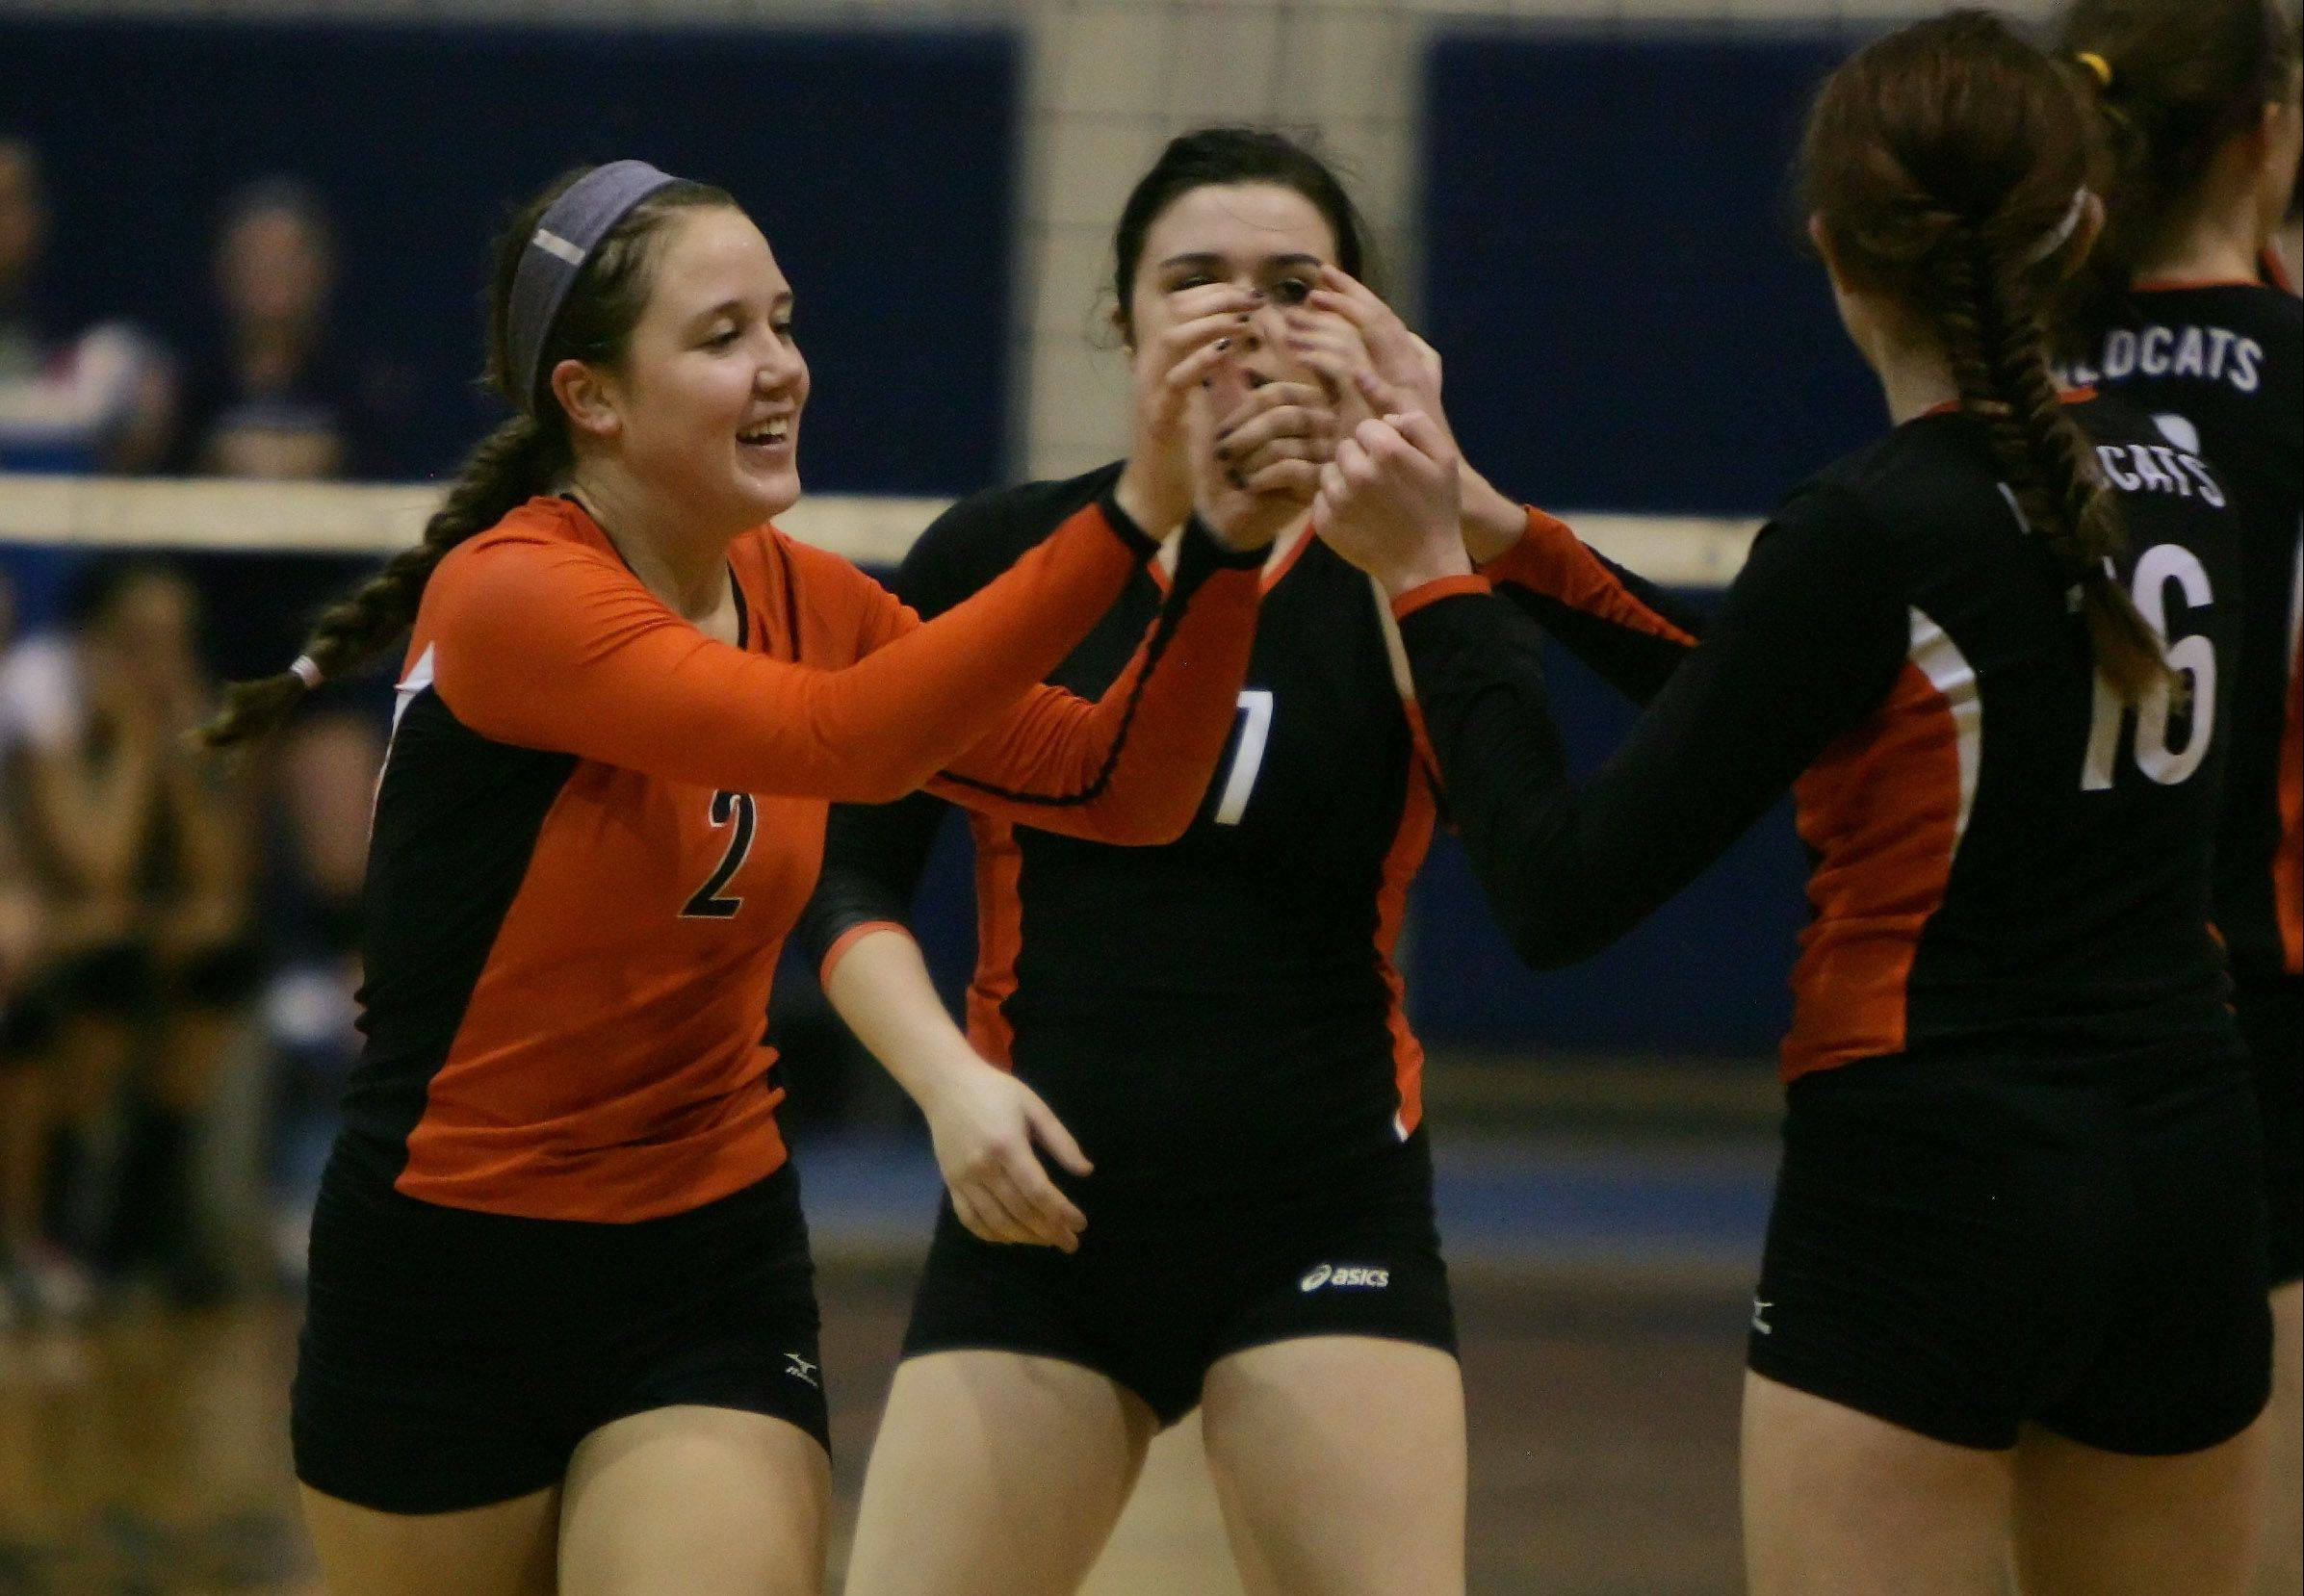 Libertyville's Kristen Webb is congratulated by teammates after winning a point on her serve during regional semifinal play Tuesday between the Wildcats and Mundelein at Lake Zurich.